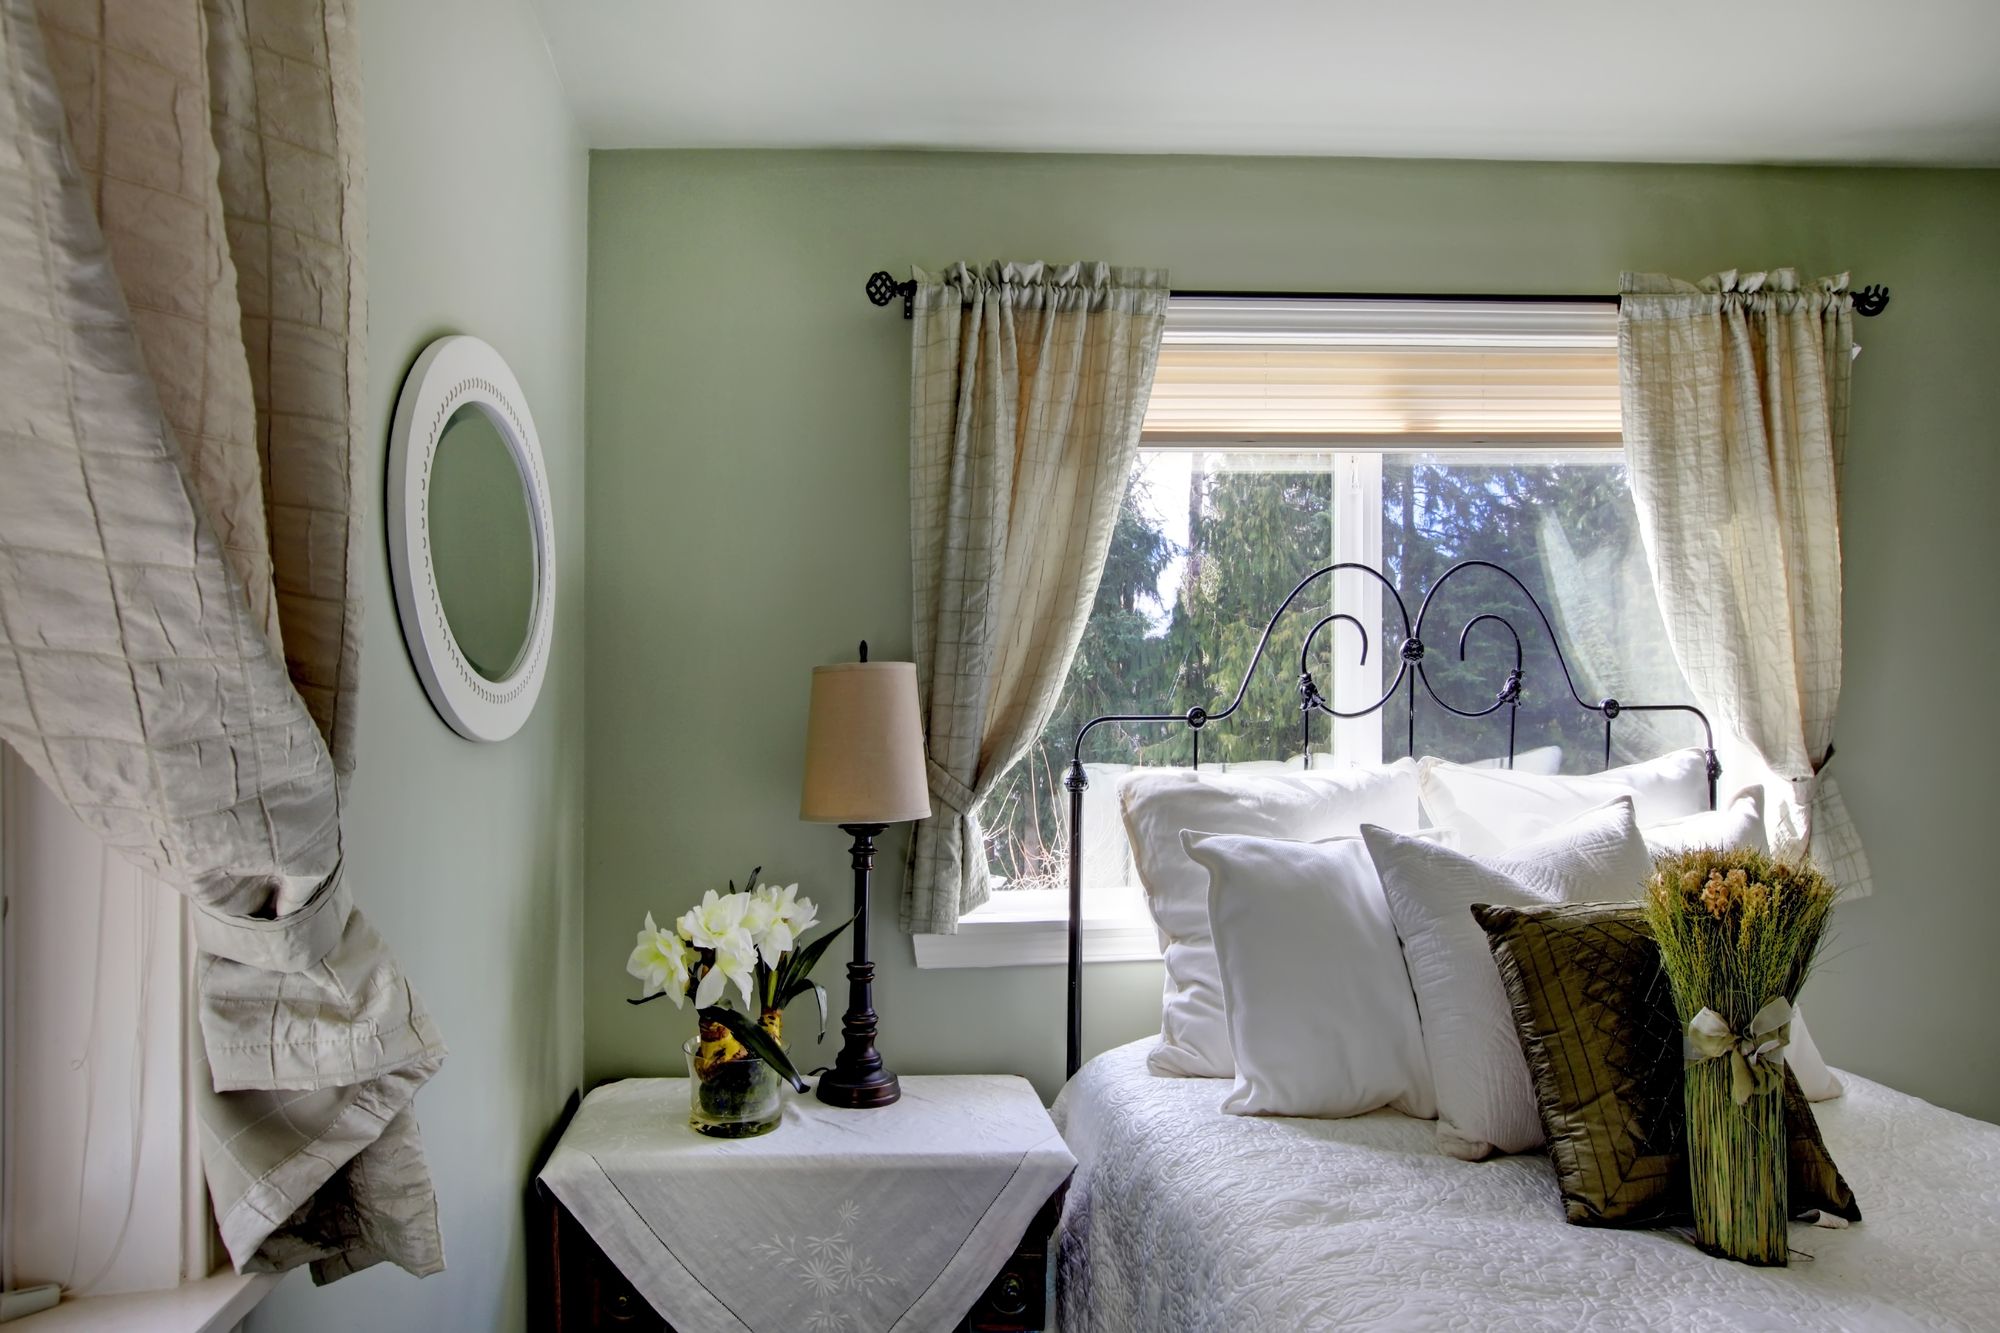 3 Bedroom Window Treatment Ideas To Improve Sleep Beaver Interiors Inc Kihei Nearsay